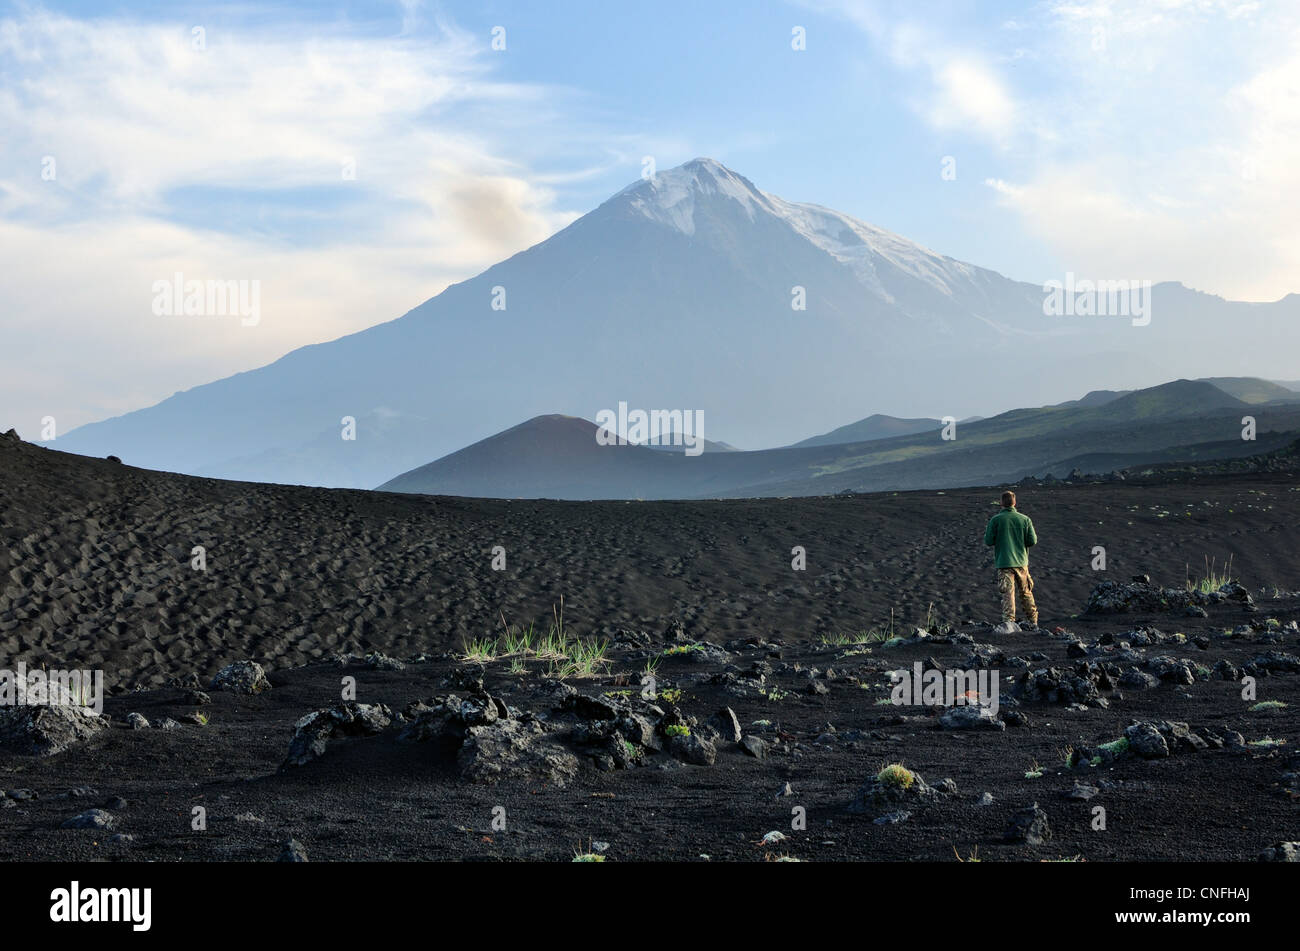 Man standing in lava field with Tolbachik Volcano in background, Kamchatka Peninsula, Russia - Stock Image